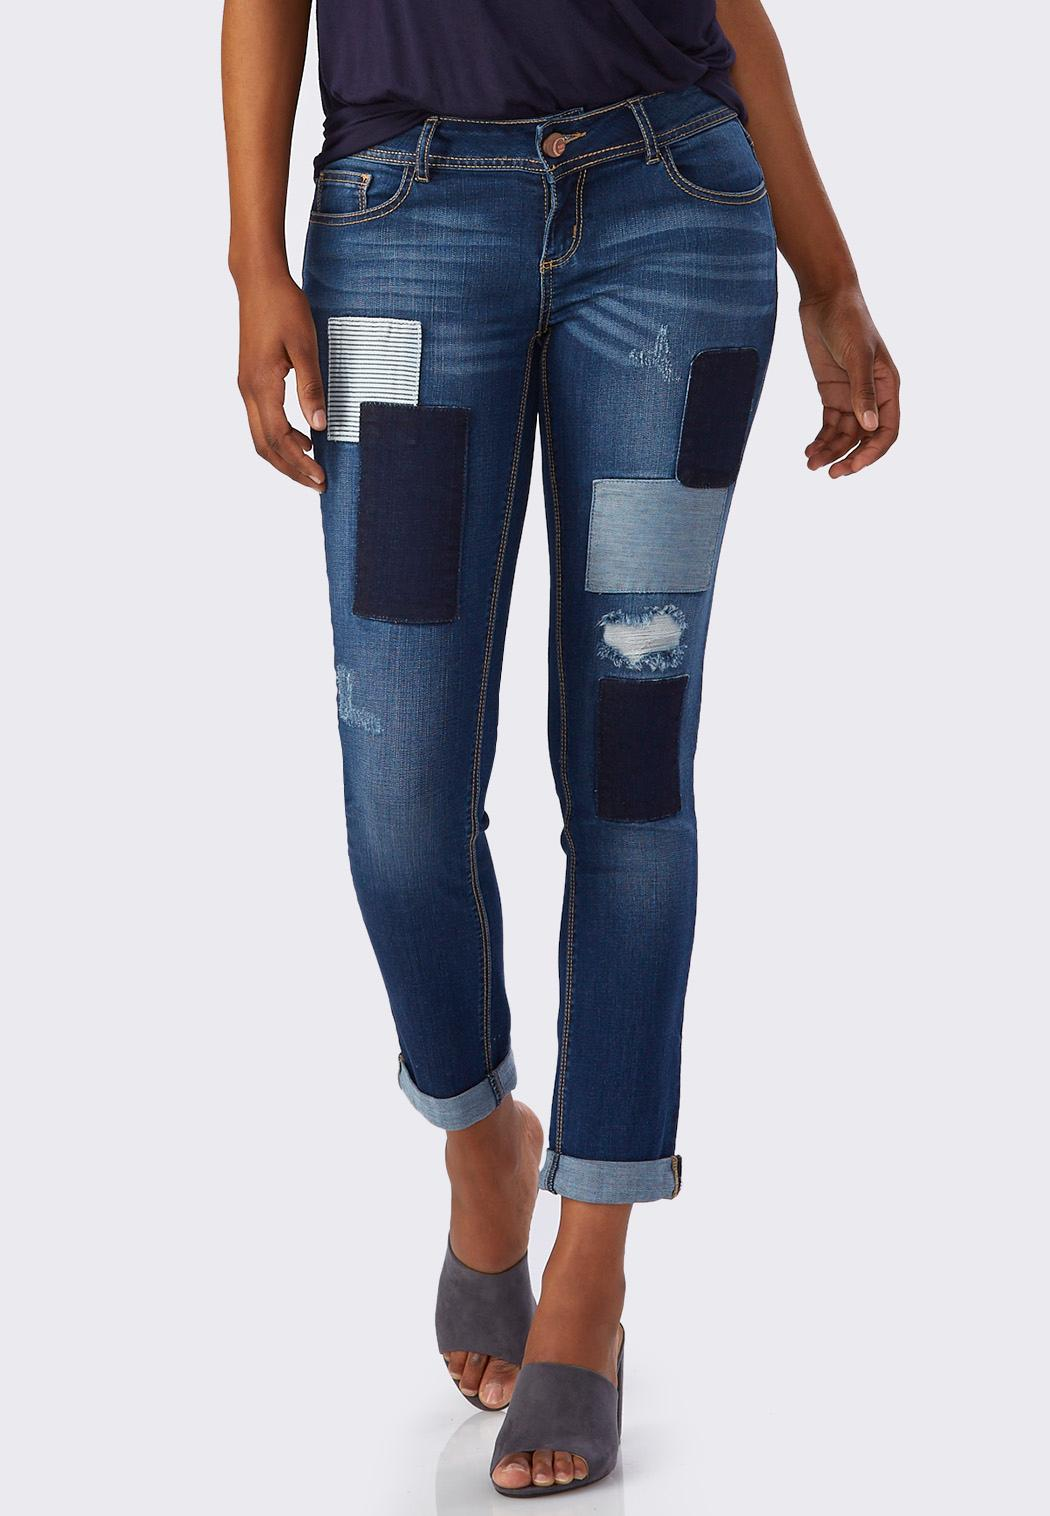 Shop ankle jeans in the latest washes, colors and prints from your favorite brands. Free shipping and returns every day.